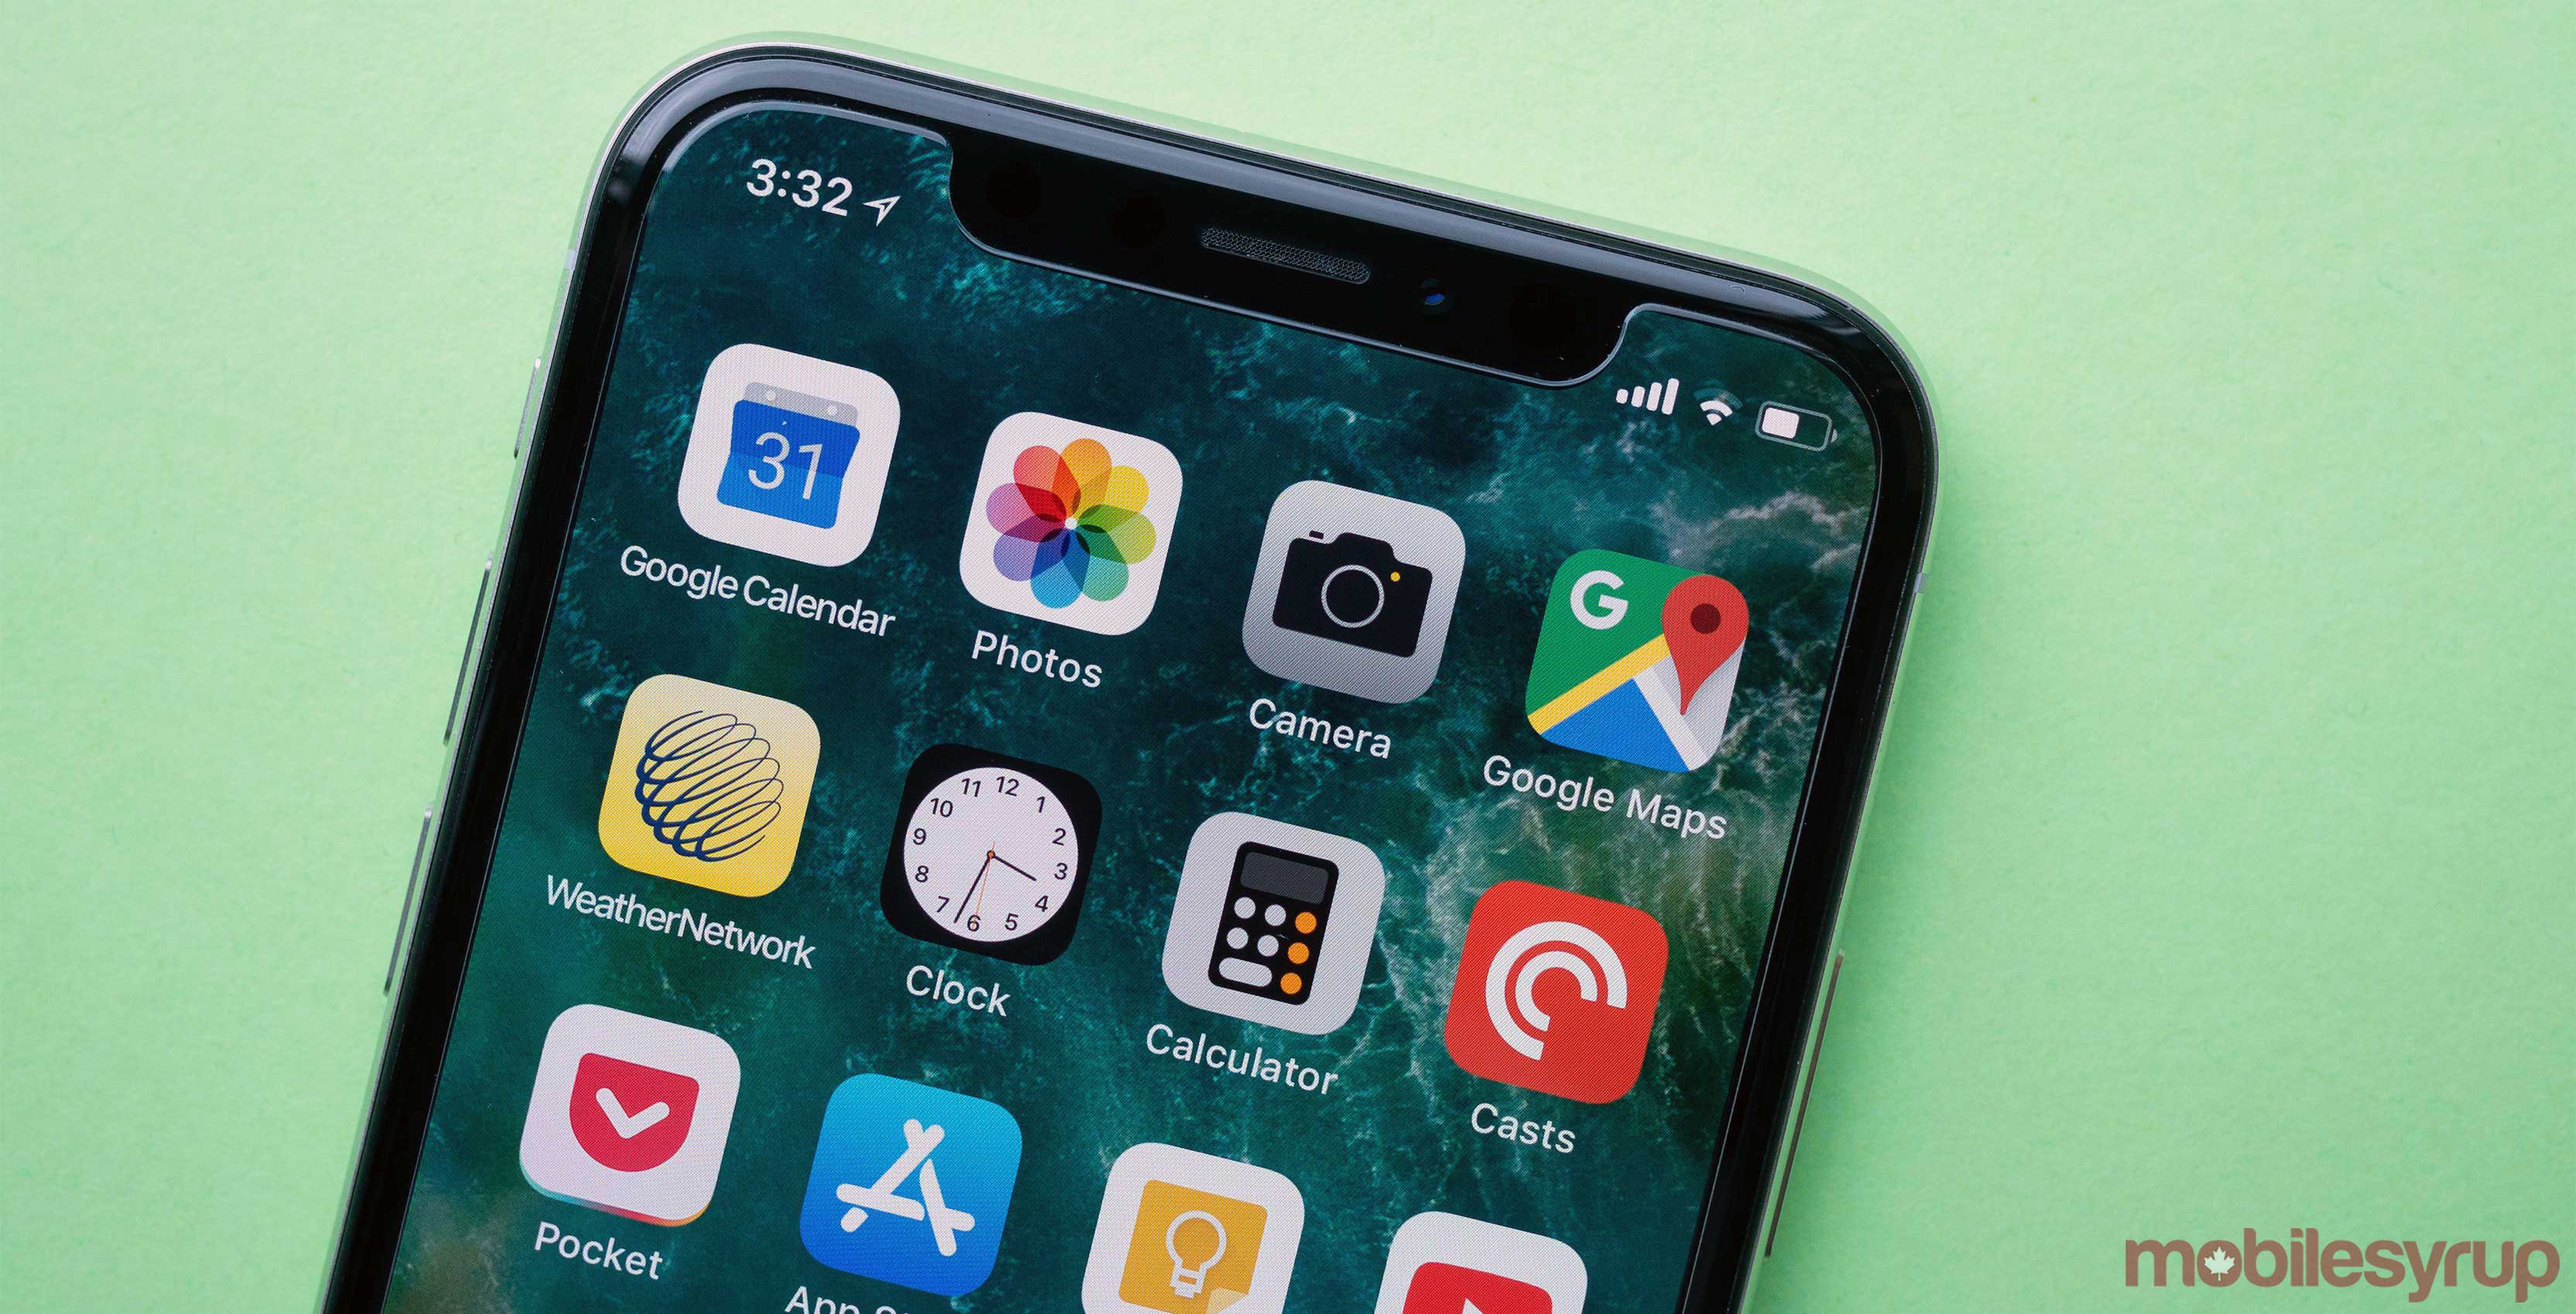 IOS 12 could turn your iPhone into your doorkey